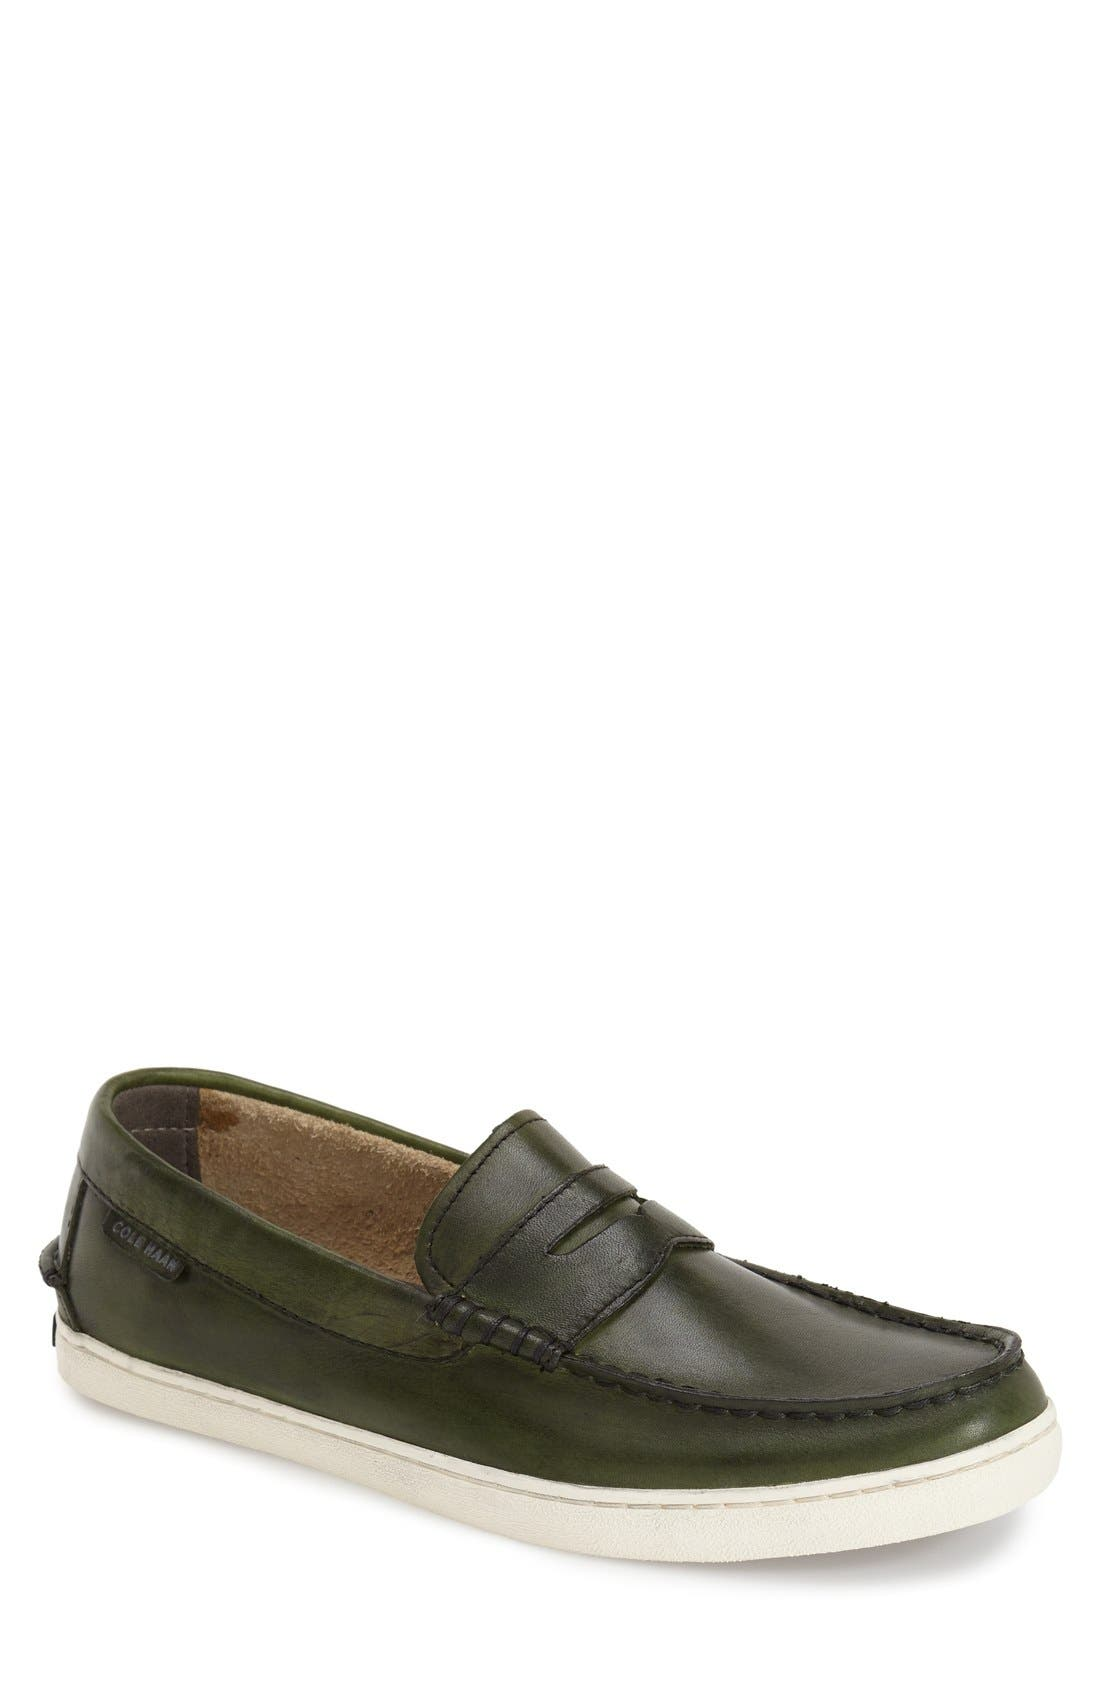 'Pinch' Penny Loafer,                         Main,                         color, 305